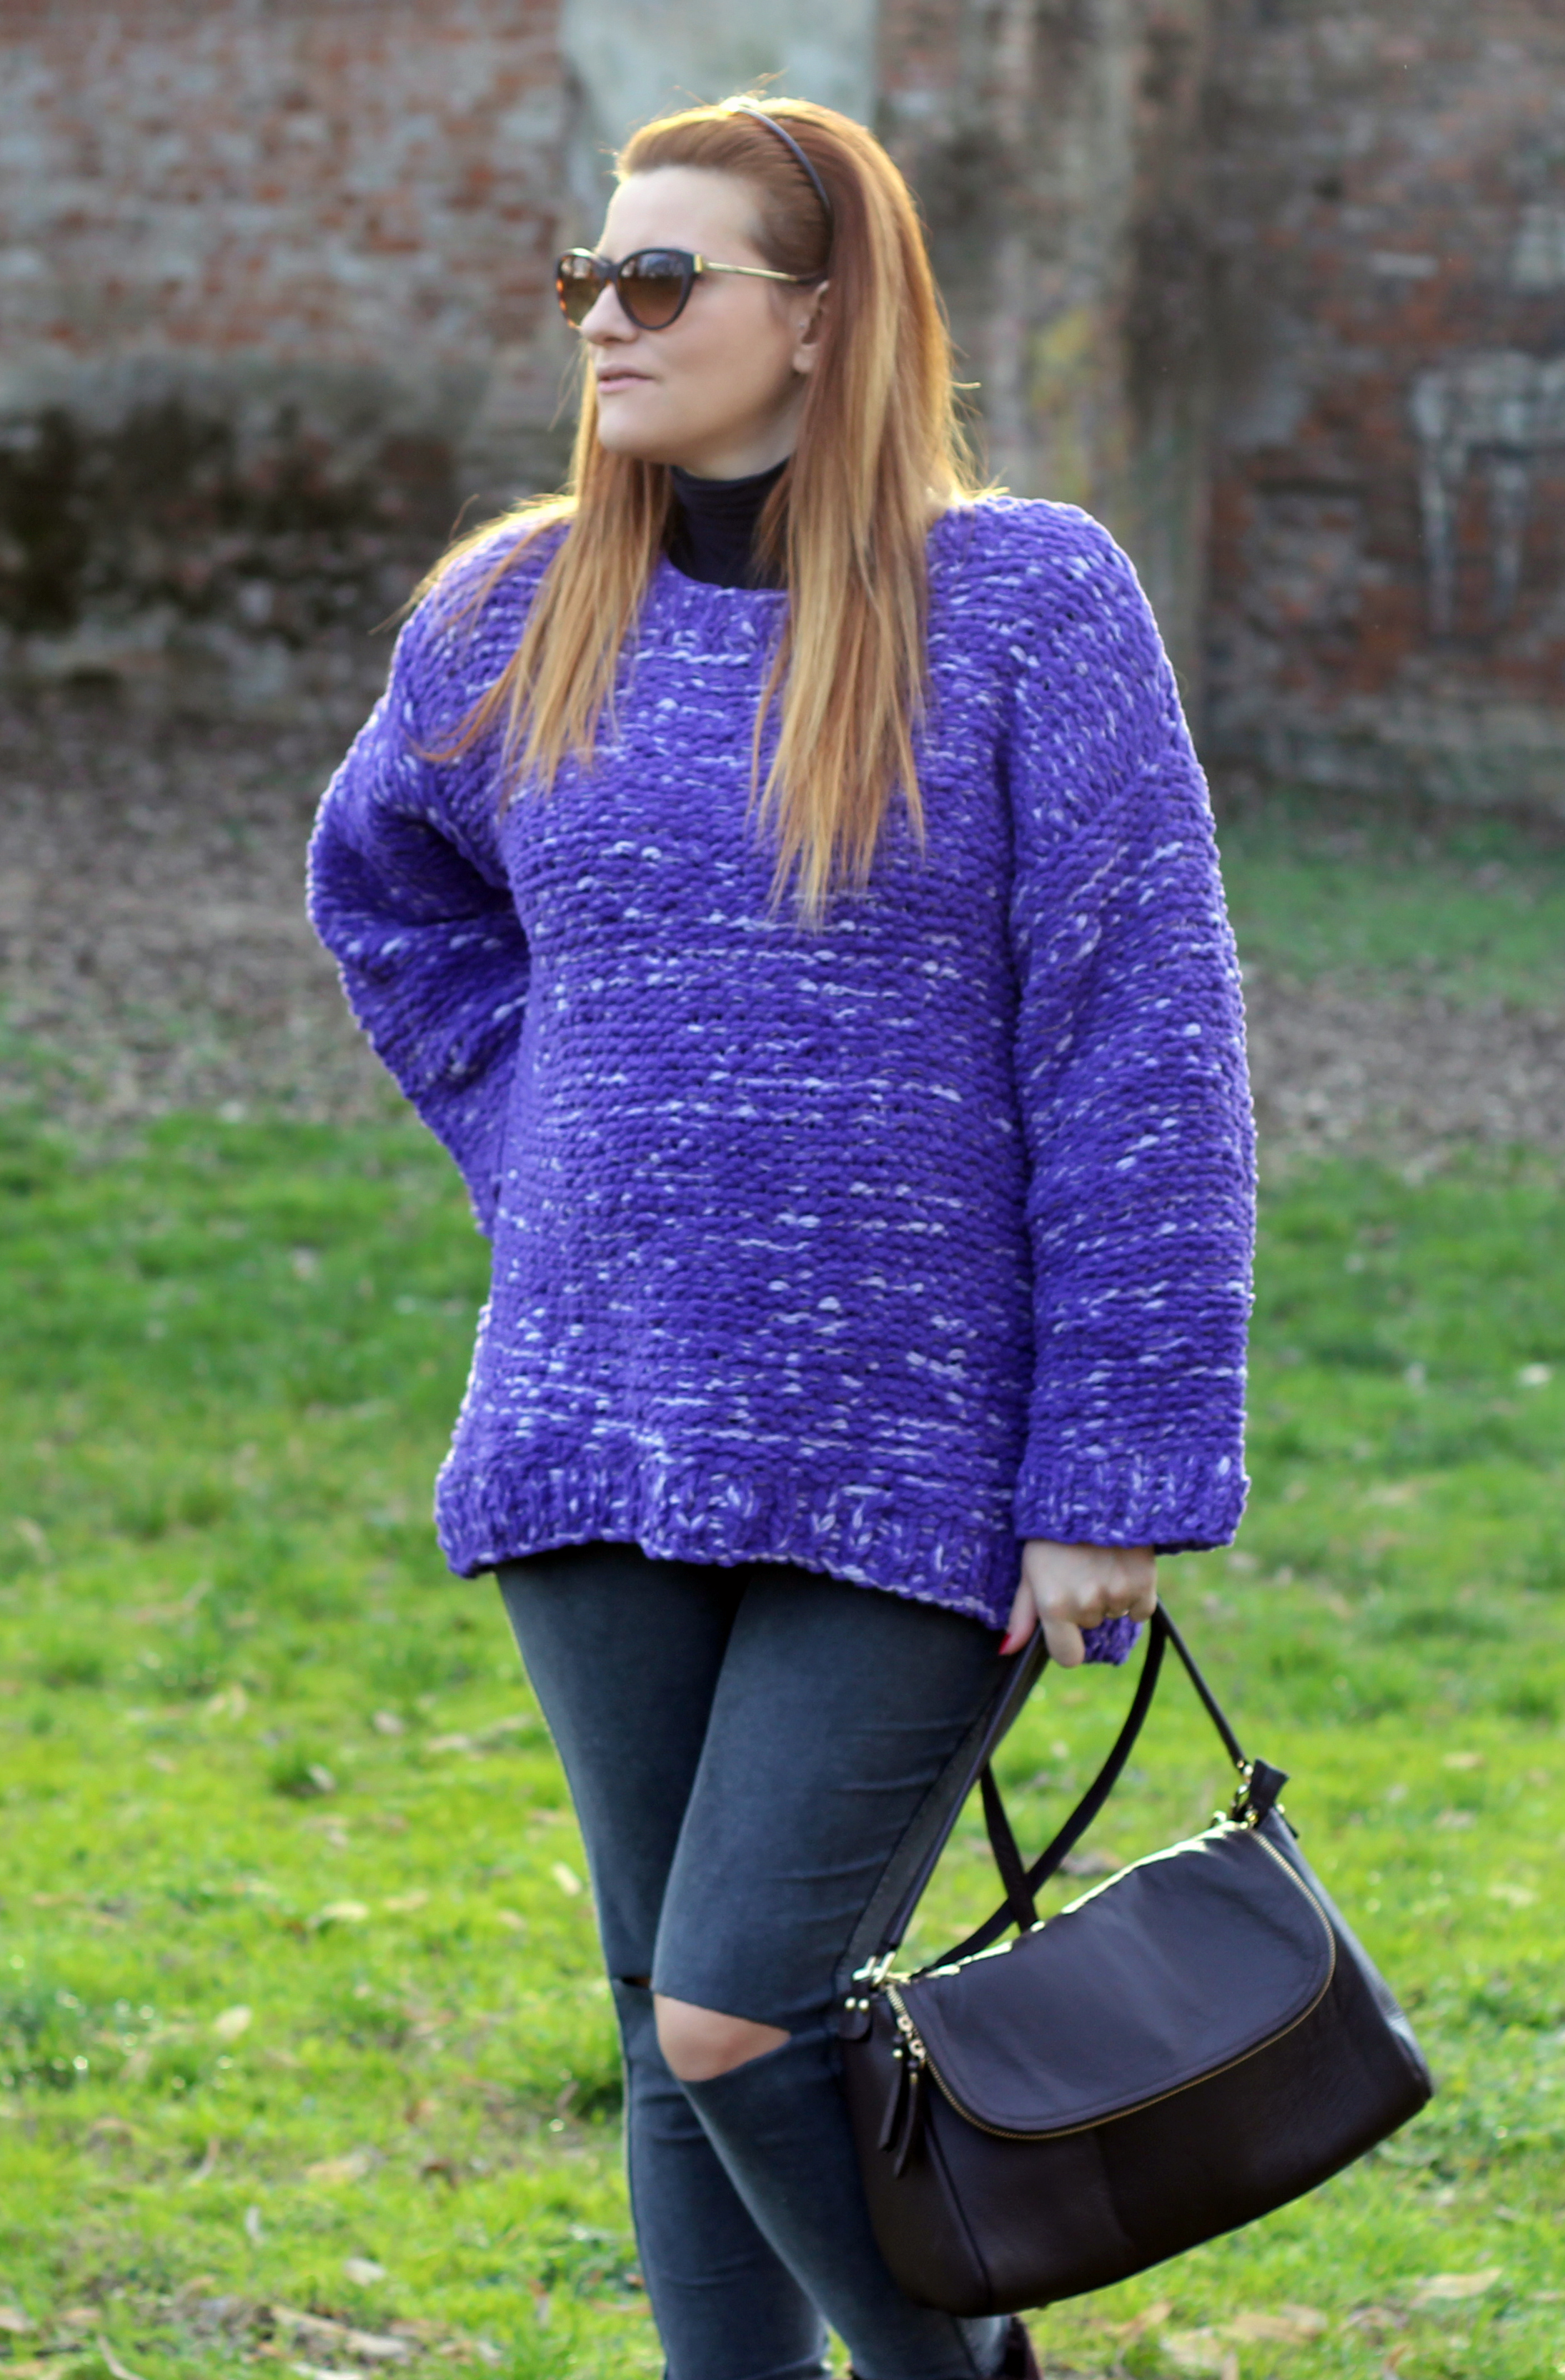 COZY PULLOVER VIOLA SALDI HM DOROTHY BAG MADE IN ITALY FASHION BLOG ITALIA